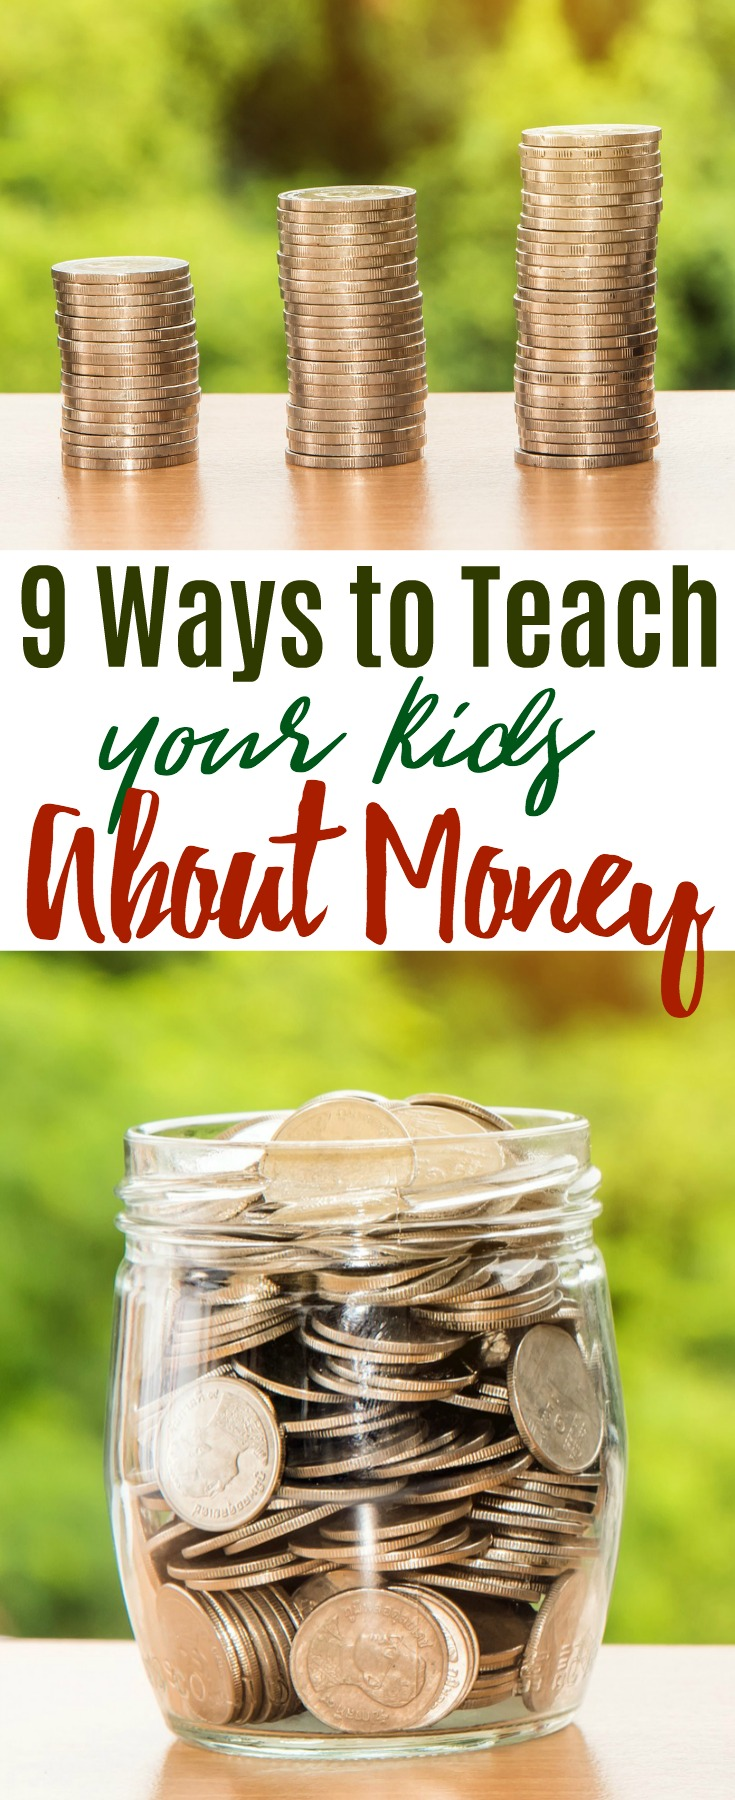 Spelling, geography, math -- these are all things kids learn in school. Sometimes some of the best life lessons are taught within the confines of your house. Here are 9 ways to teach your kids about money. #money #kids #parenting #budget #raisingkids